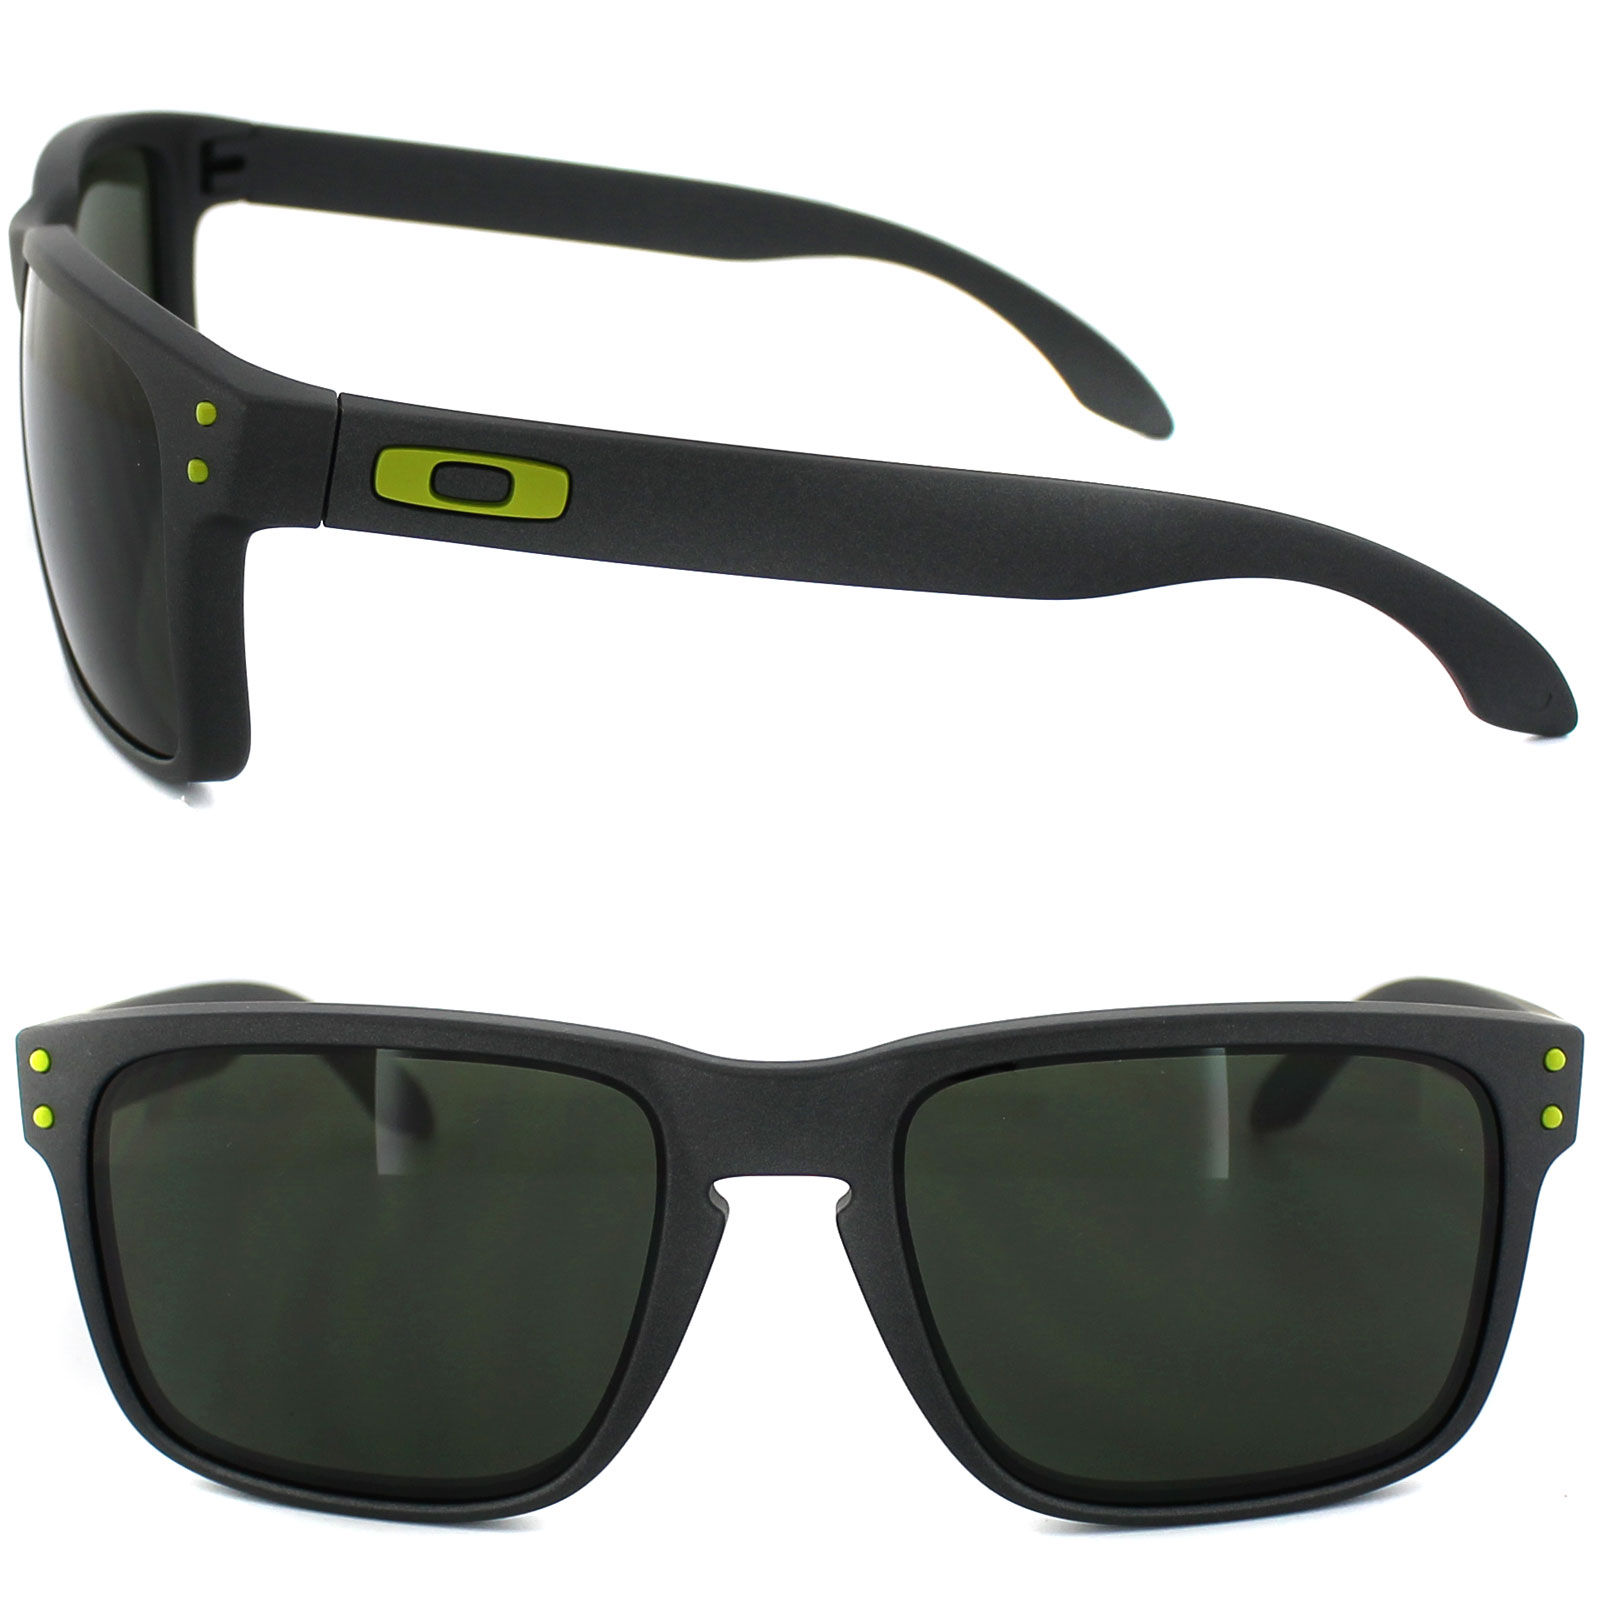 Oakley Sunglasses Holbrook  oakley sunglasses holbrook oo9102 38 steel dark grey